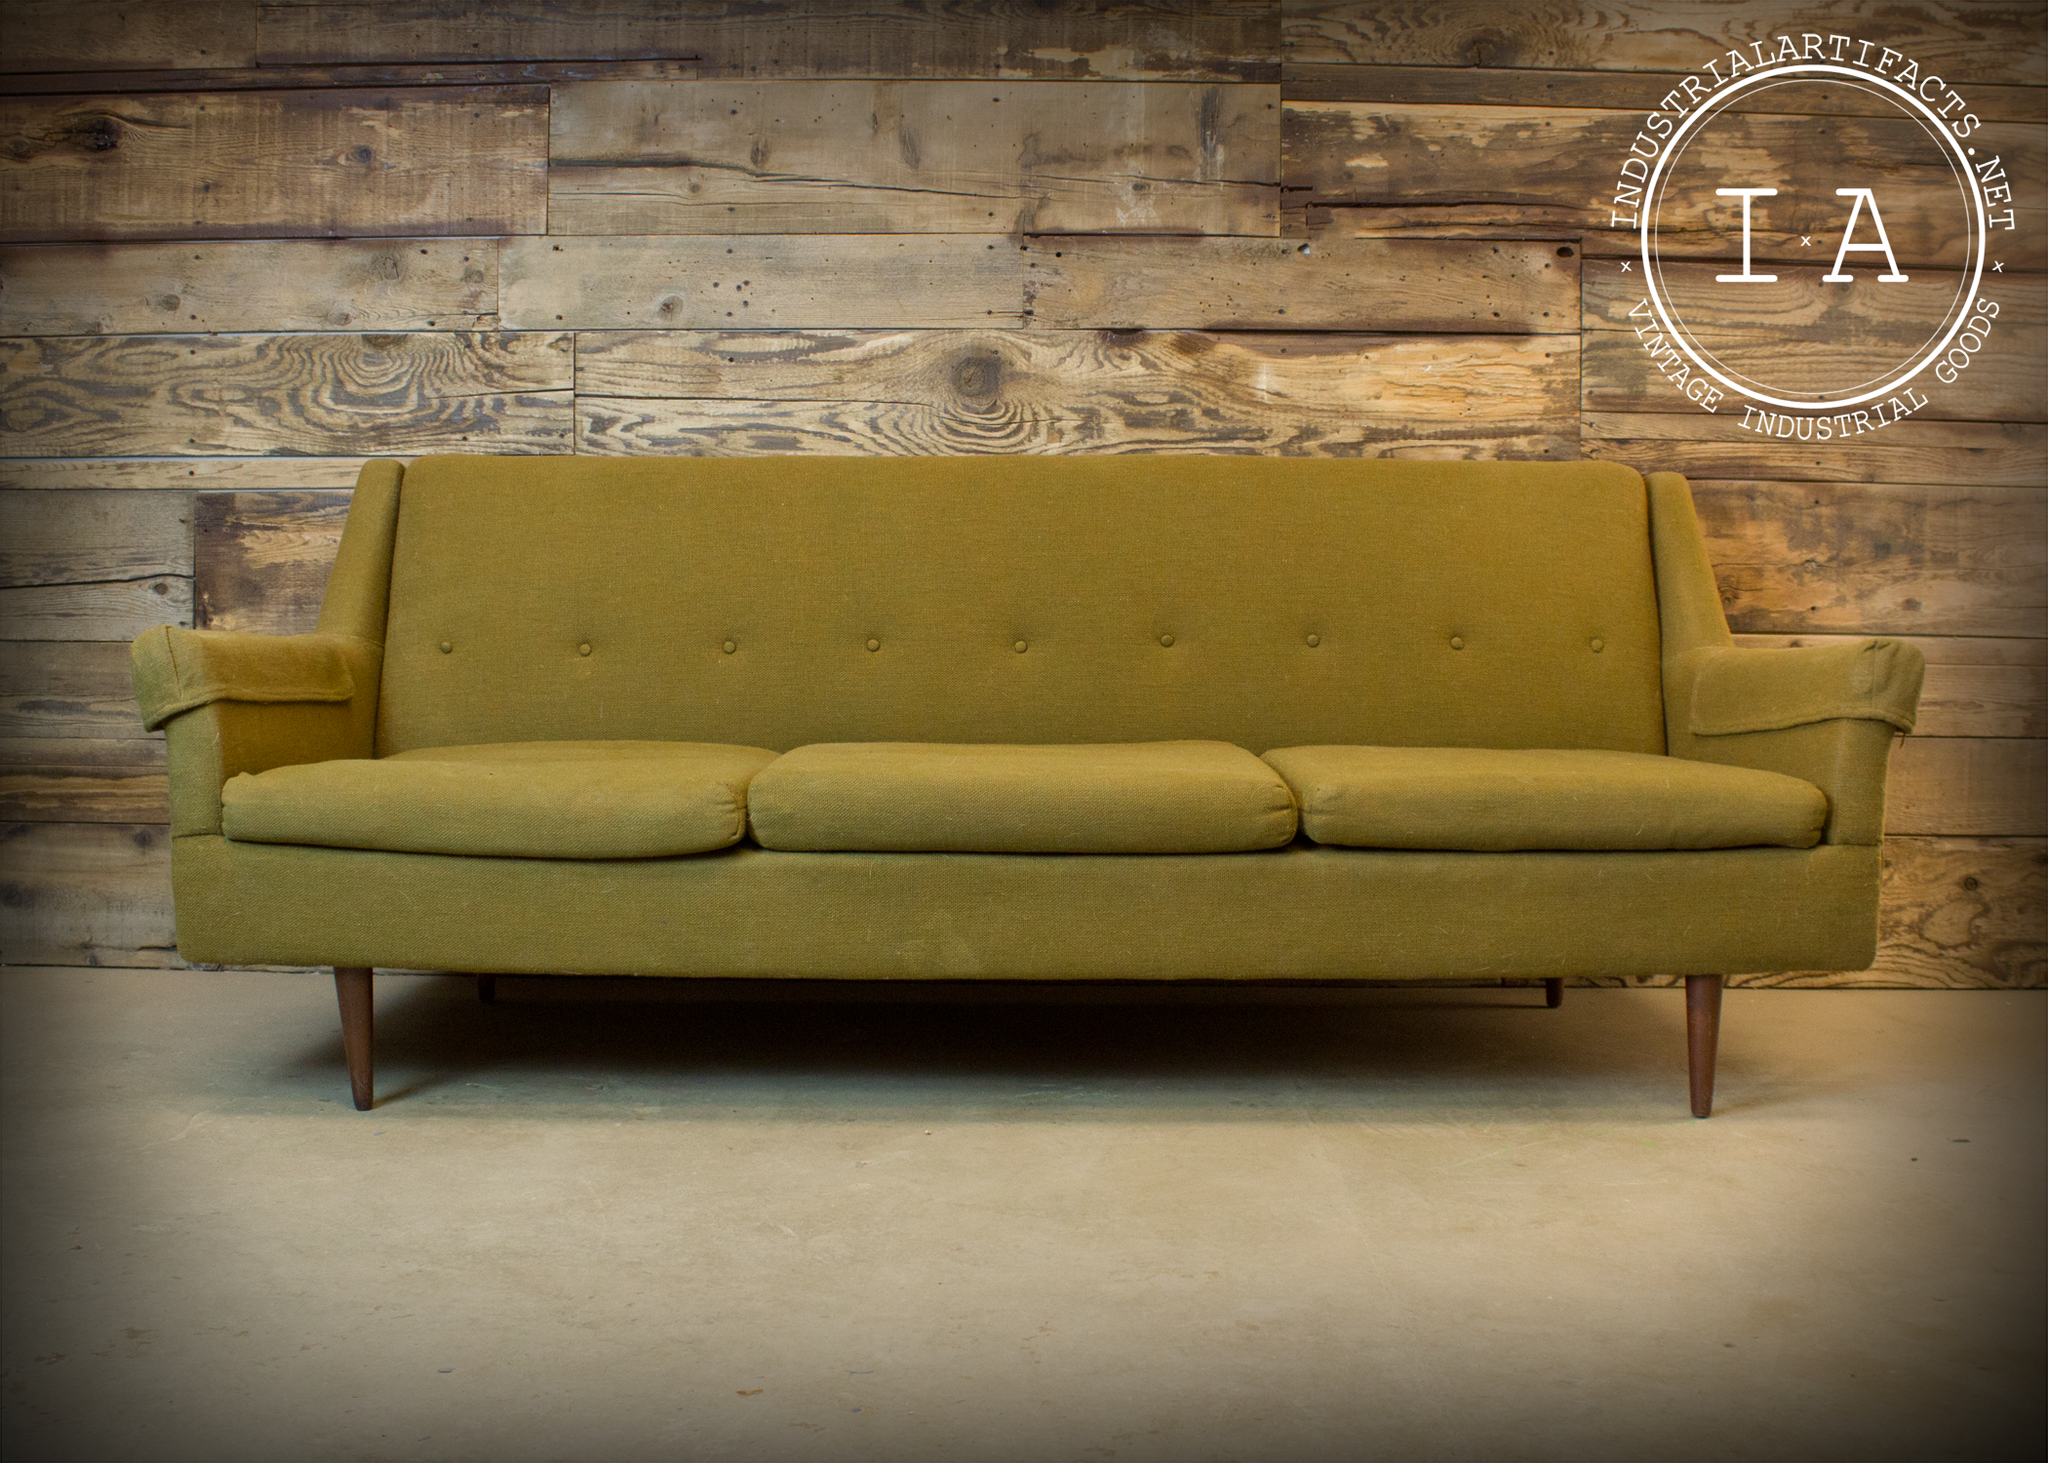 Vintage Industrial Mid Century Modern Green Couch Office ...